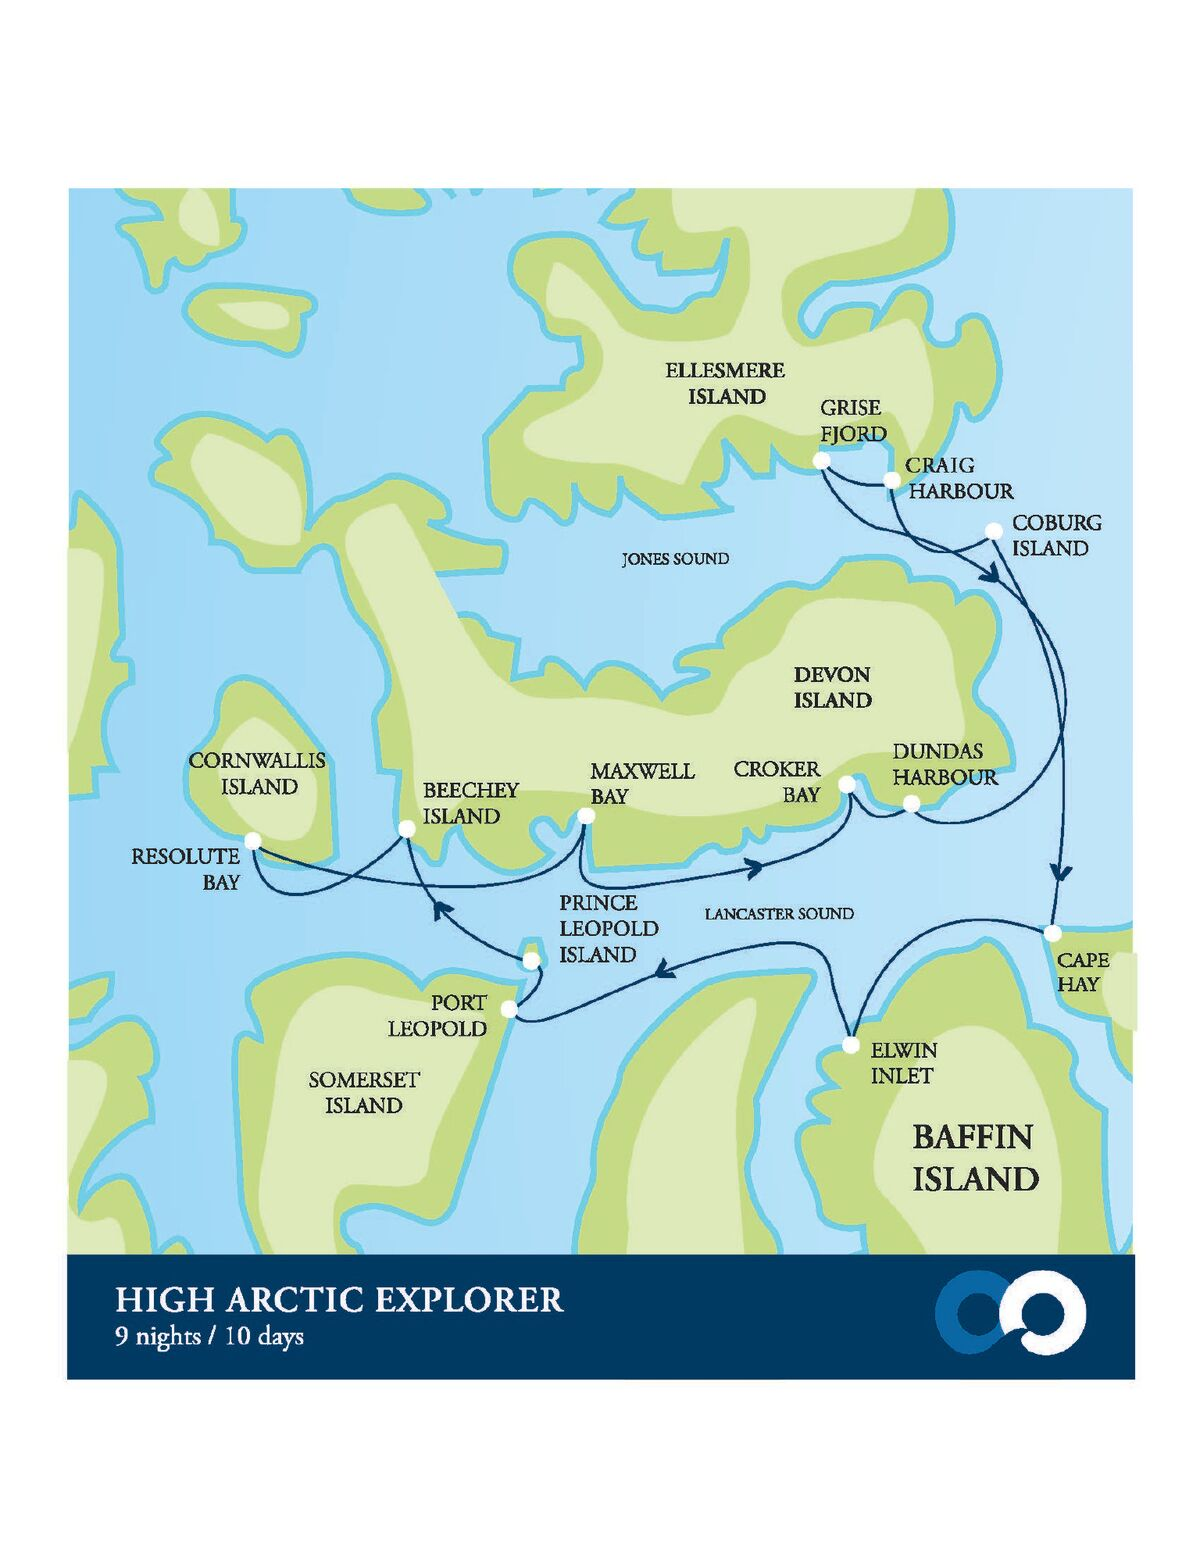 Map for High Arctic Explorer (Akademik Ioffe)